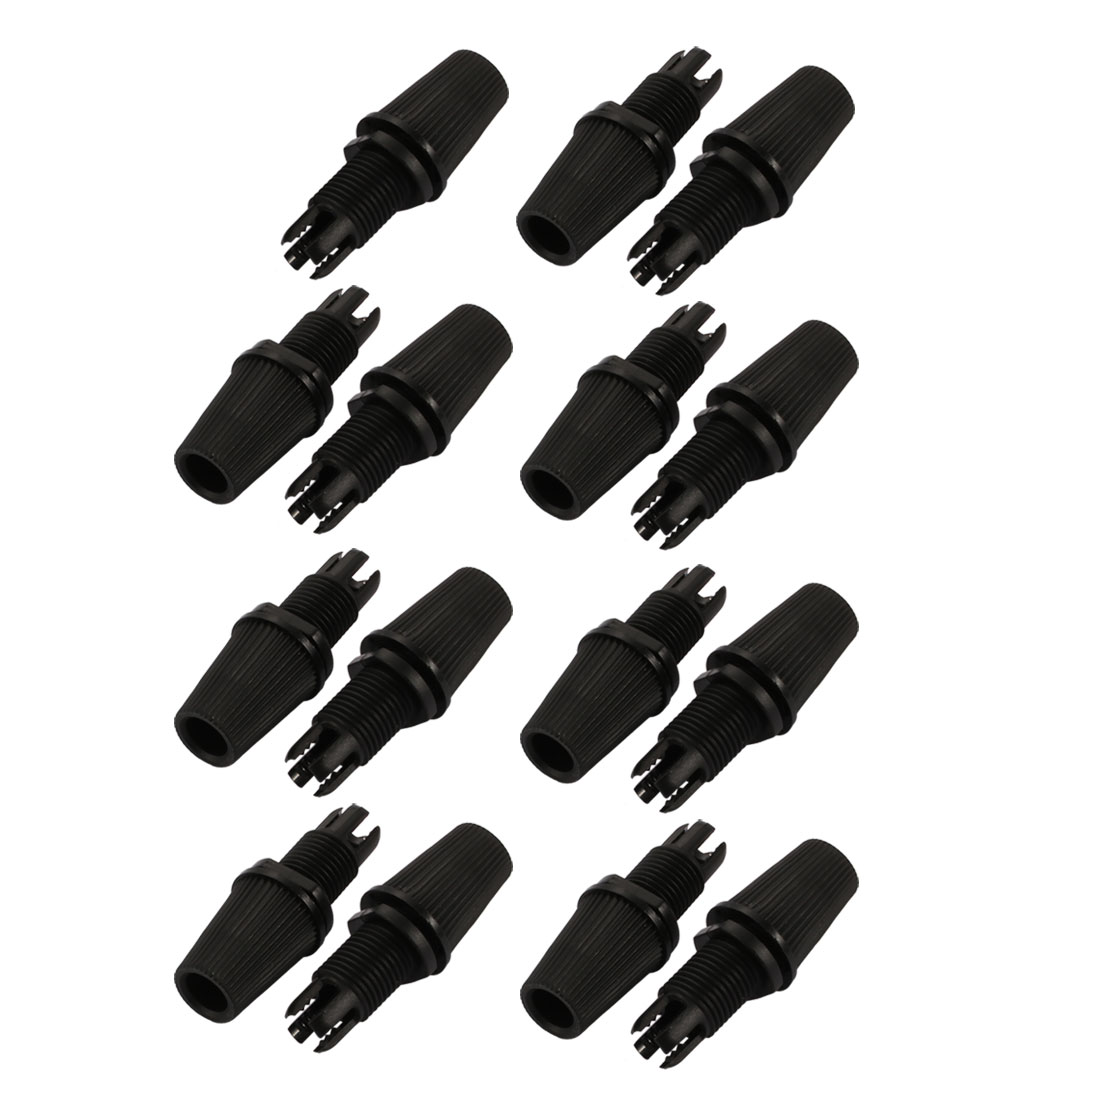 15pcs 6.3mm Line Hole Dia Thread Adjustable Clamps Light Cable Clips Black